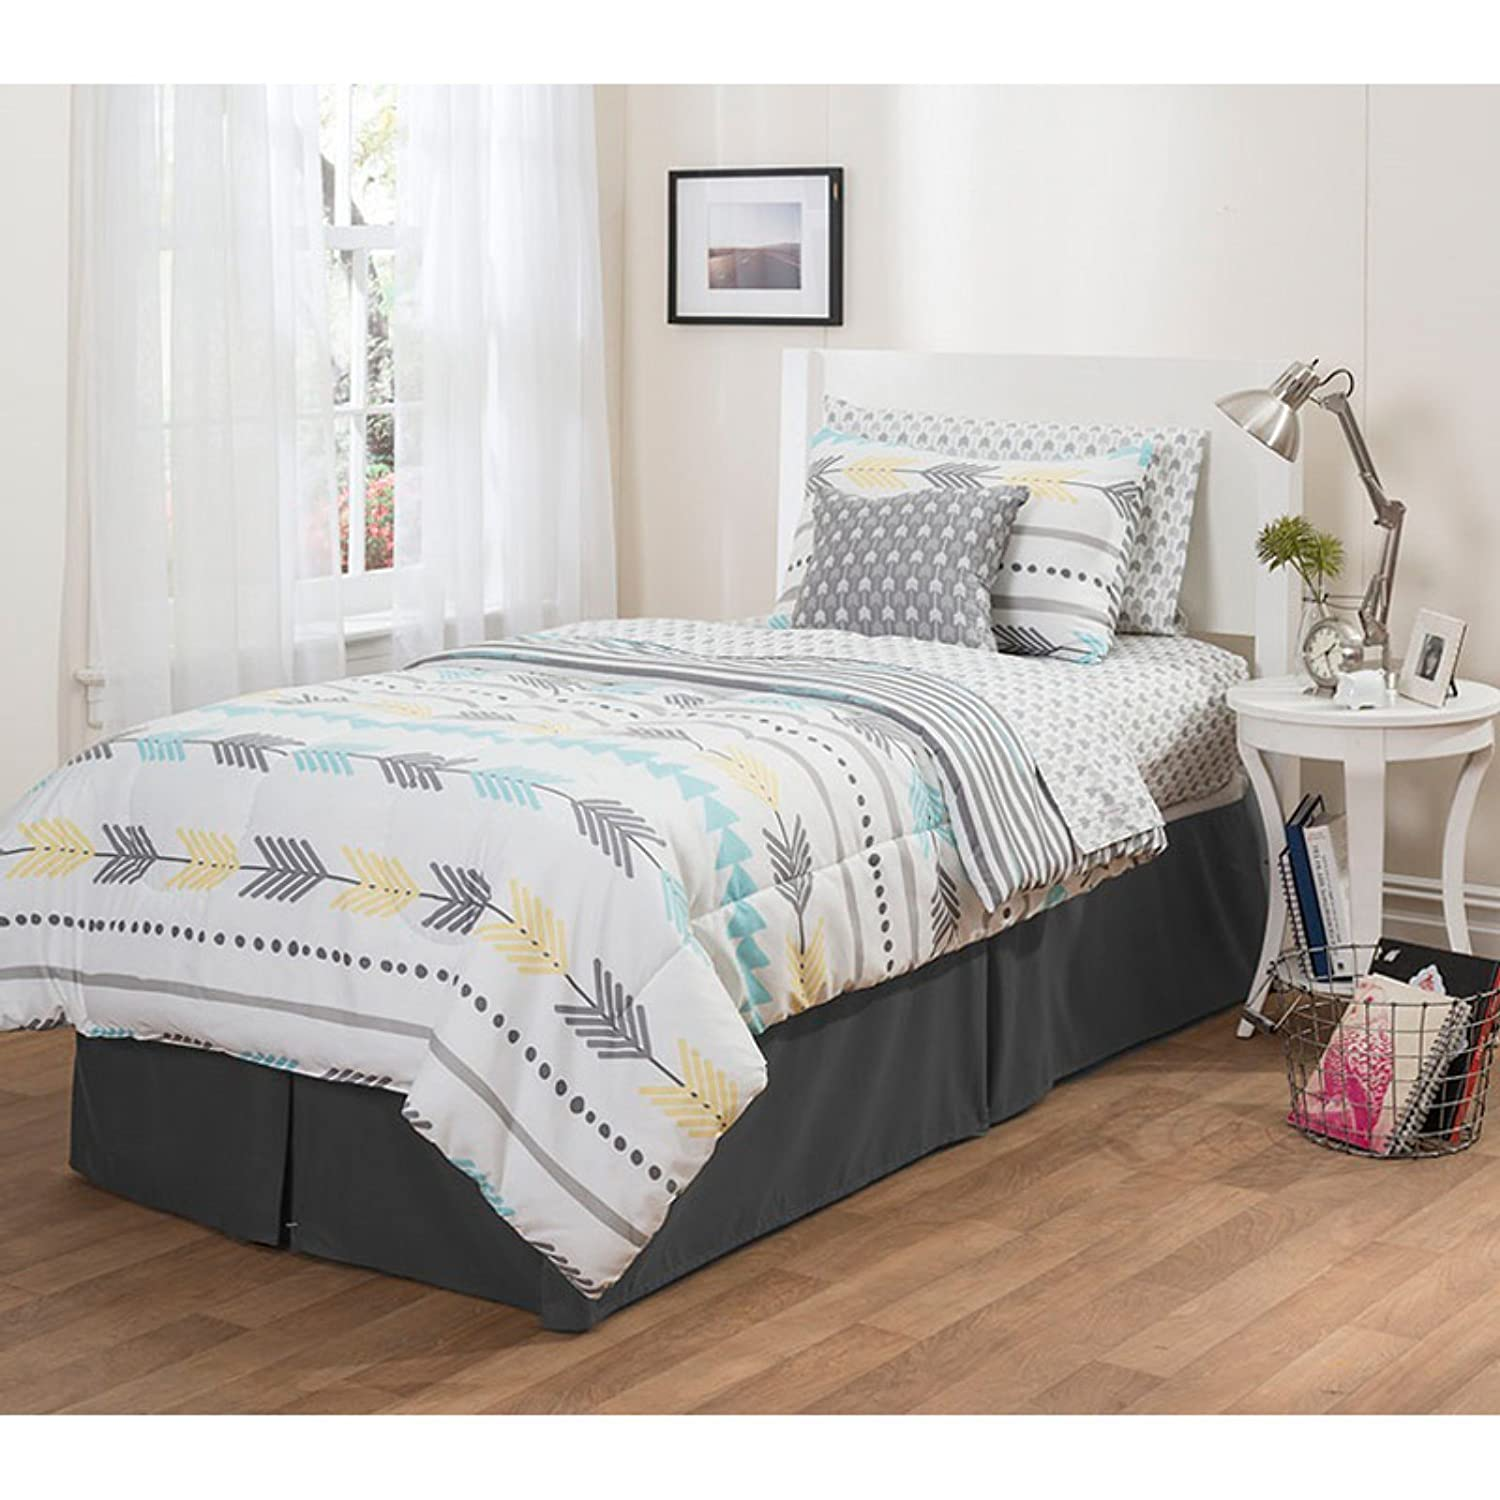 8 Piece Kids Blue Arrow Comforter Queen Set, White Graphical Symbol Bedding Geometric Novelty Themed Bed In Bag Polka Dot Stripe Indicate Direction Native American Style Peruvian Vintage, Polyester